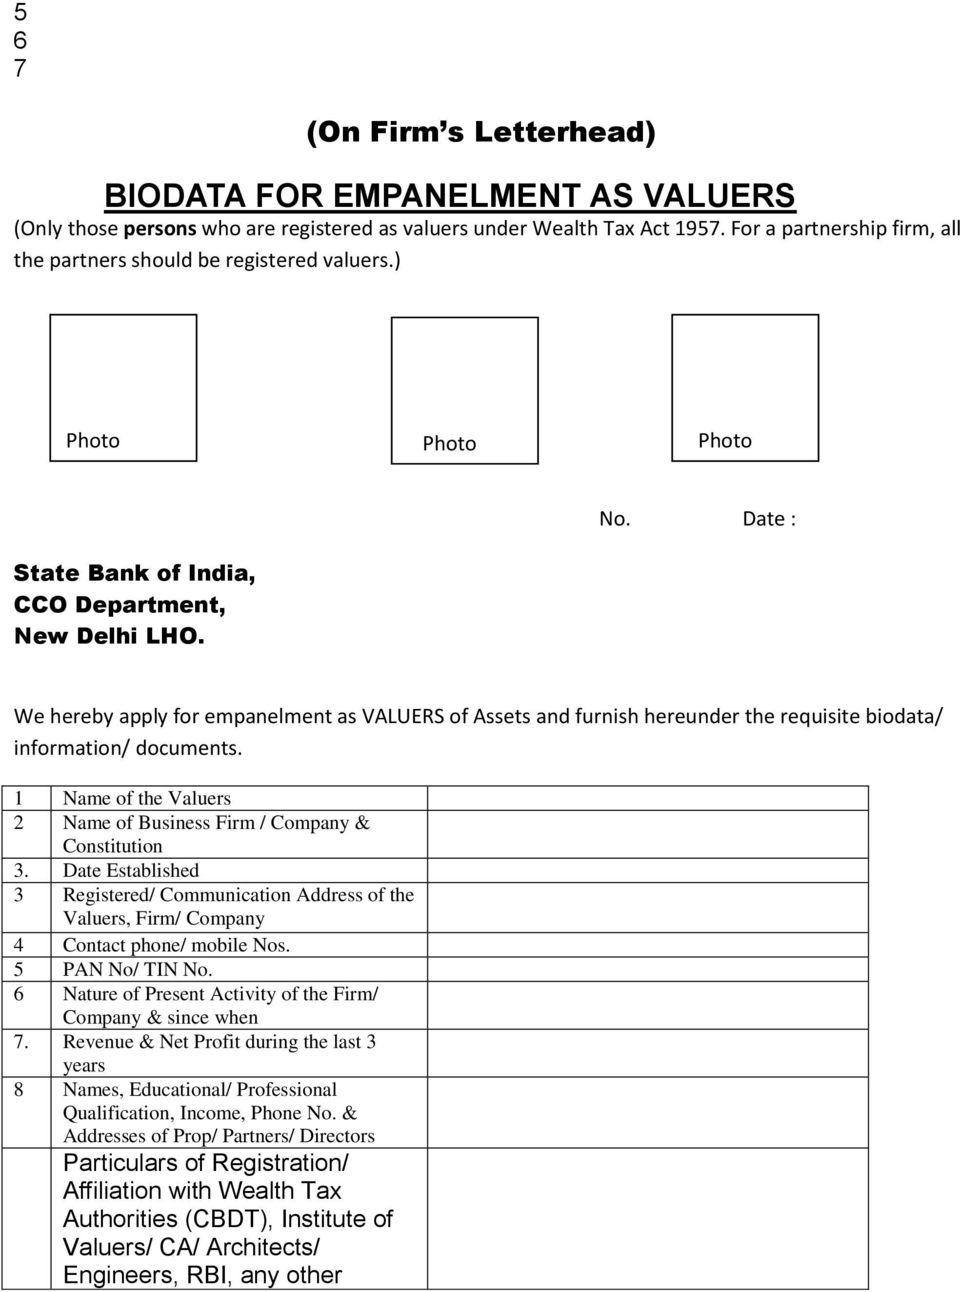 EMPANELMENT OF STOCK AUDITORS / VALUERS GUIDELINES - PDF